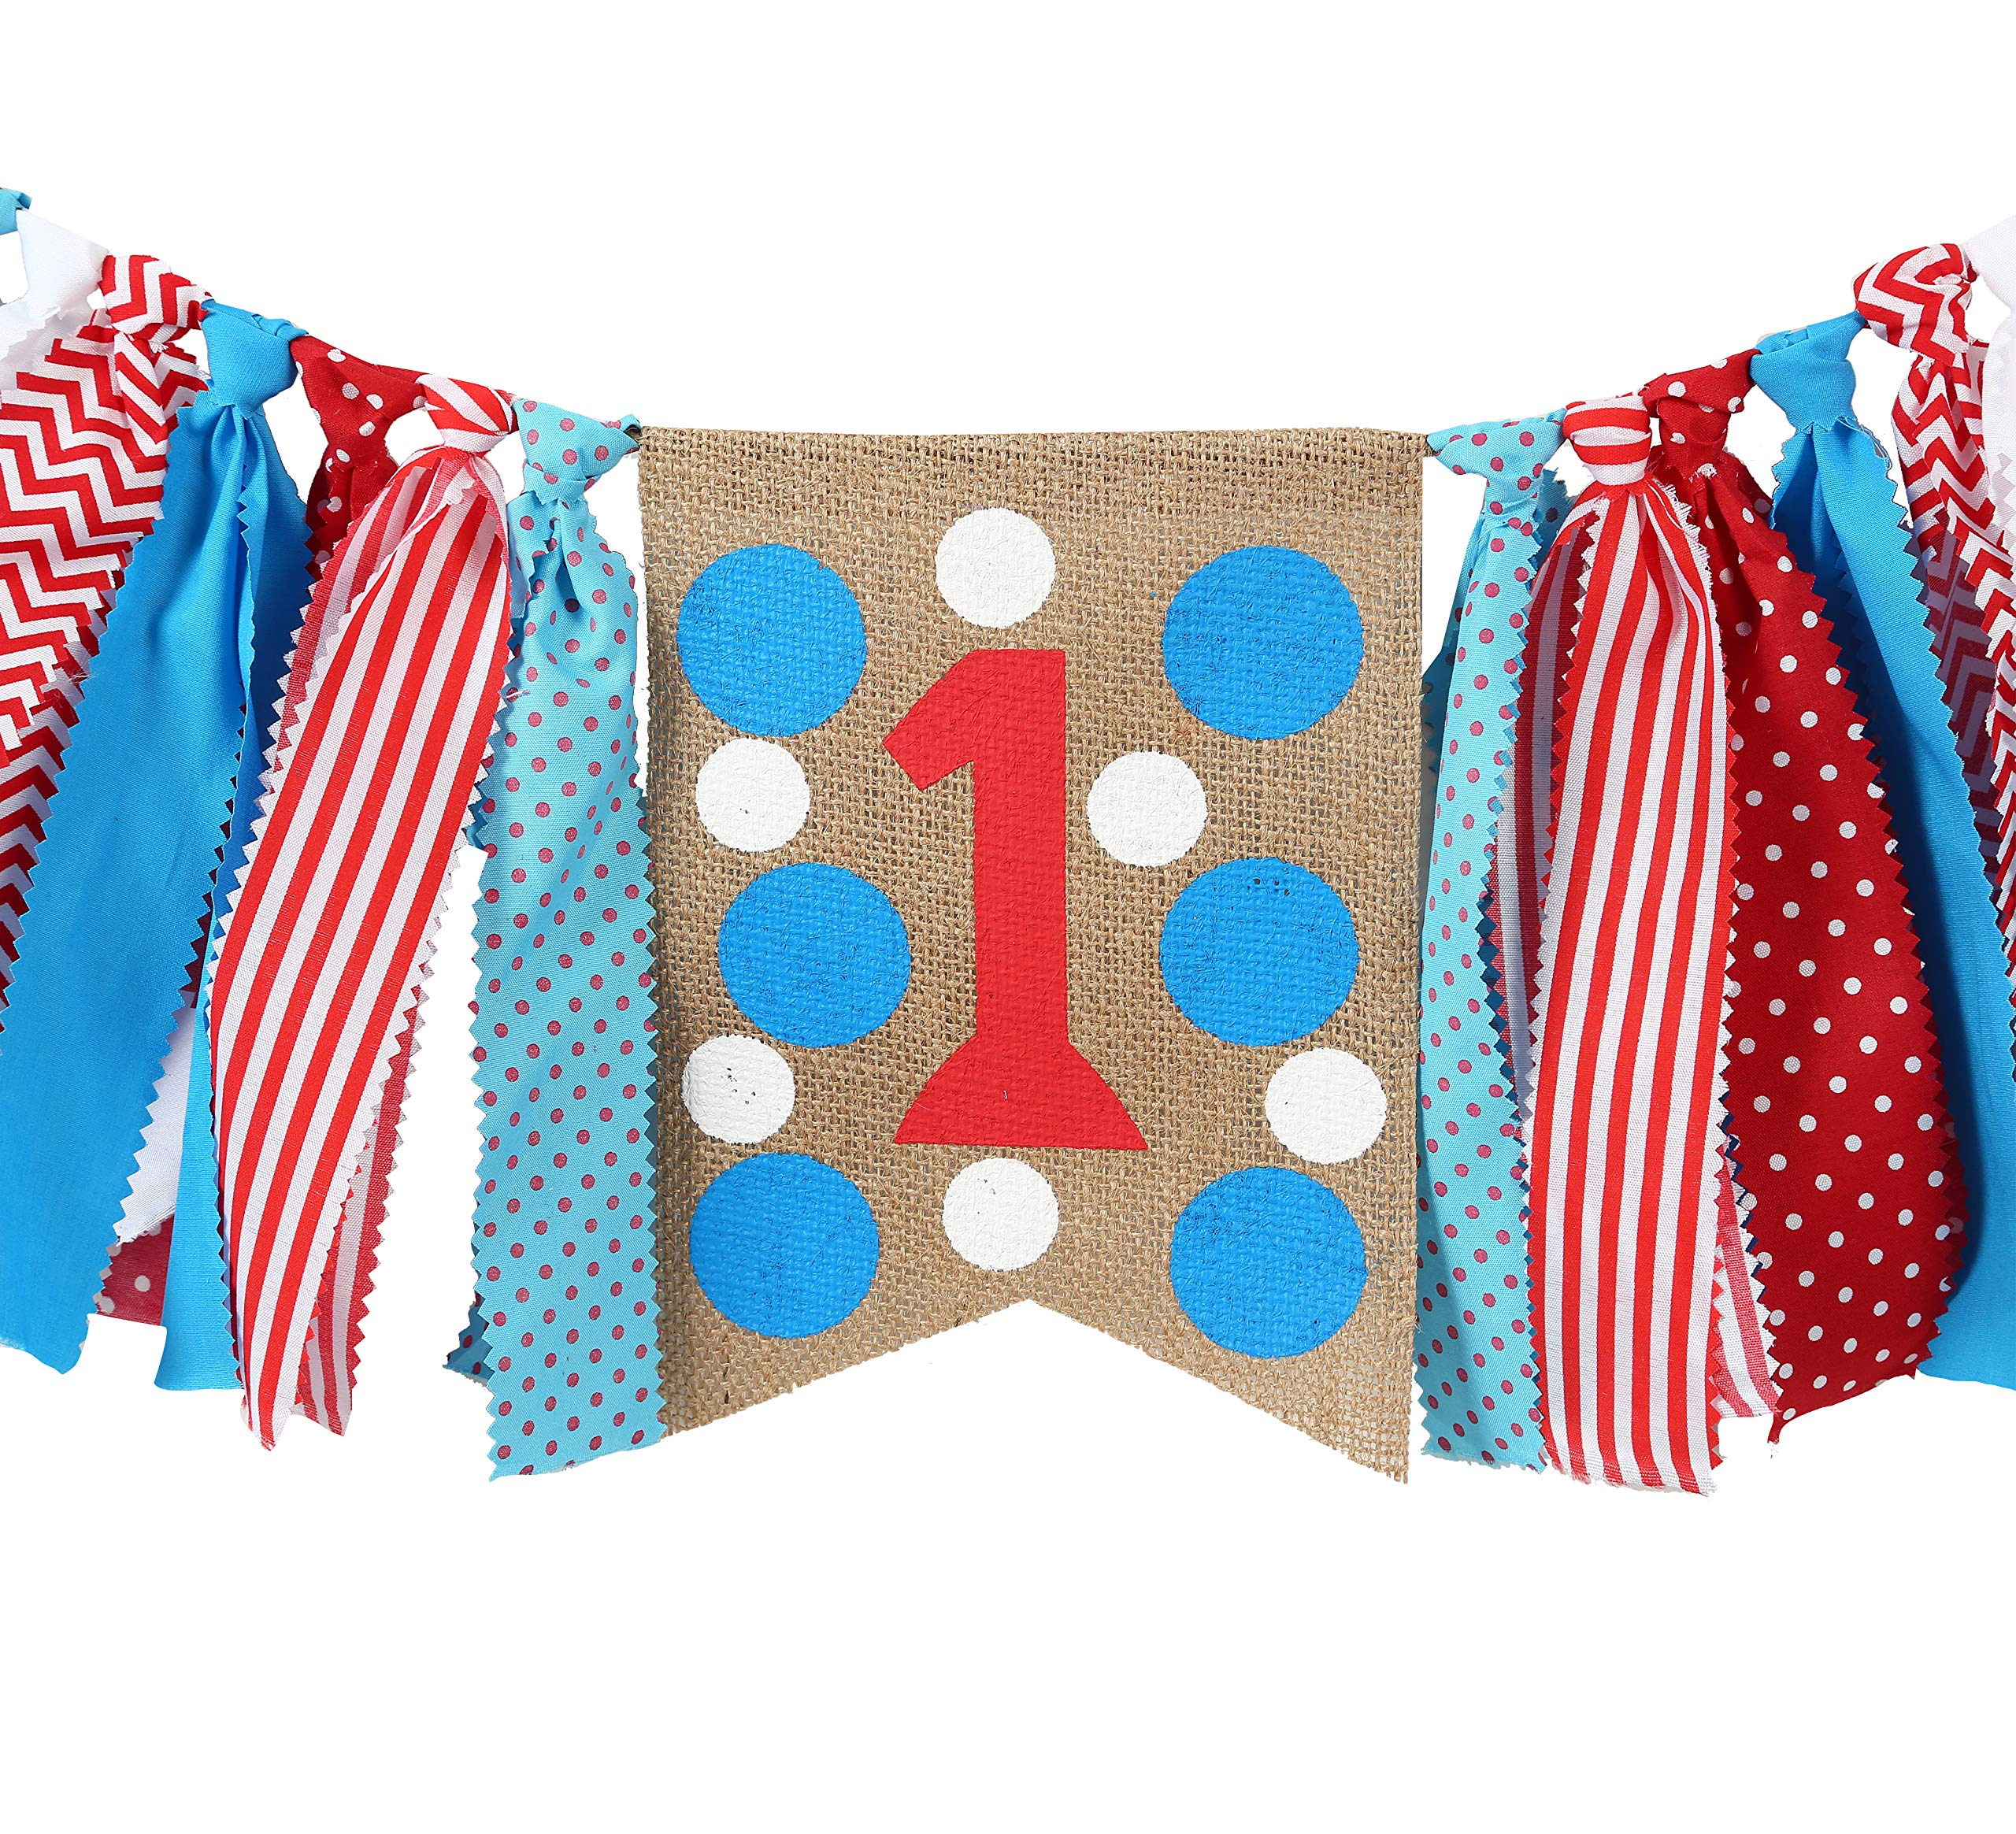 WAOUH 1star Birthday for Dr Seuss Decorations - Dr Seuss Party Supplies for Highchair Banner-Photo Prop for Dr Seuss Wall Decor,Birthday Souvenir and Gifts for Kids (1st Birthday Banner) by WAOUH (Image #3)